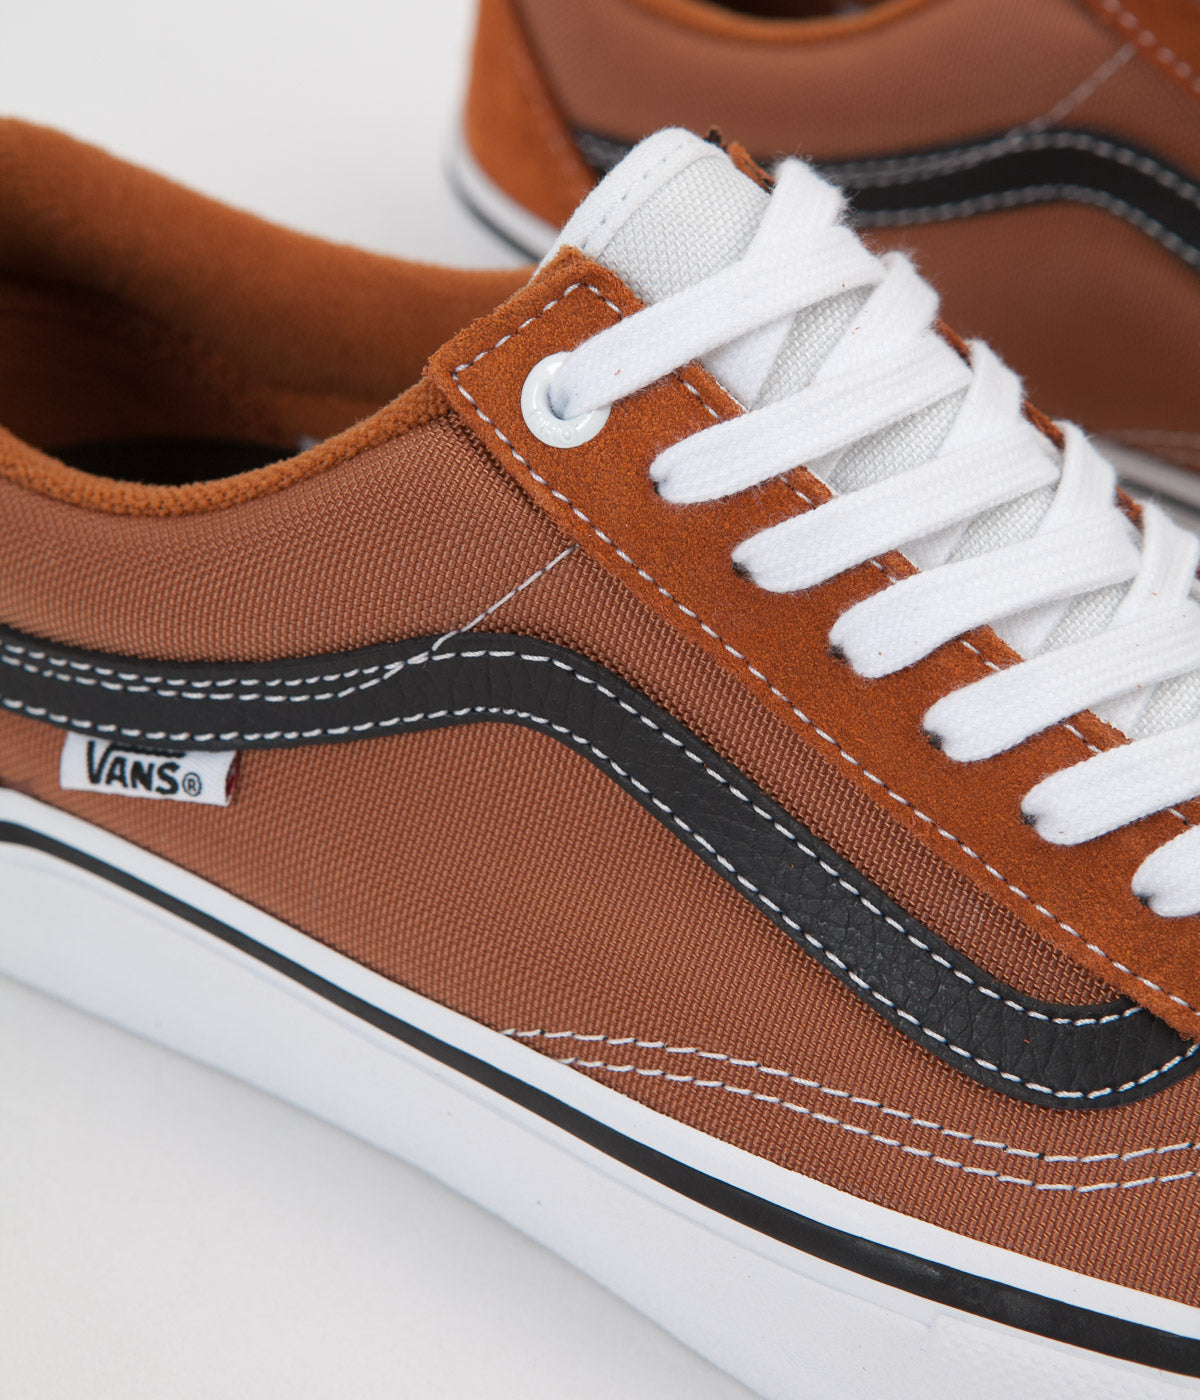 a9909f28b1713e Achetez vans old skool pro glazed ginger   61% de r duction!